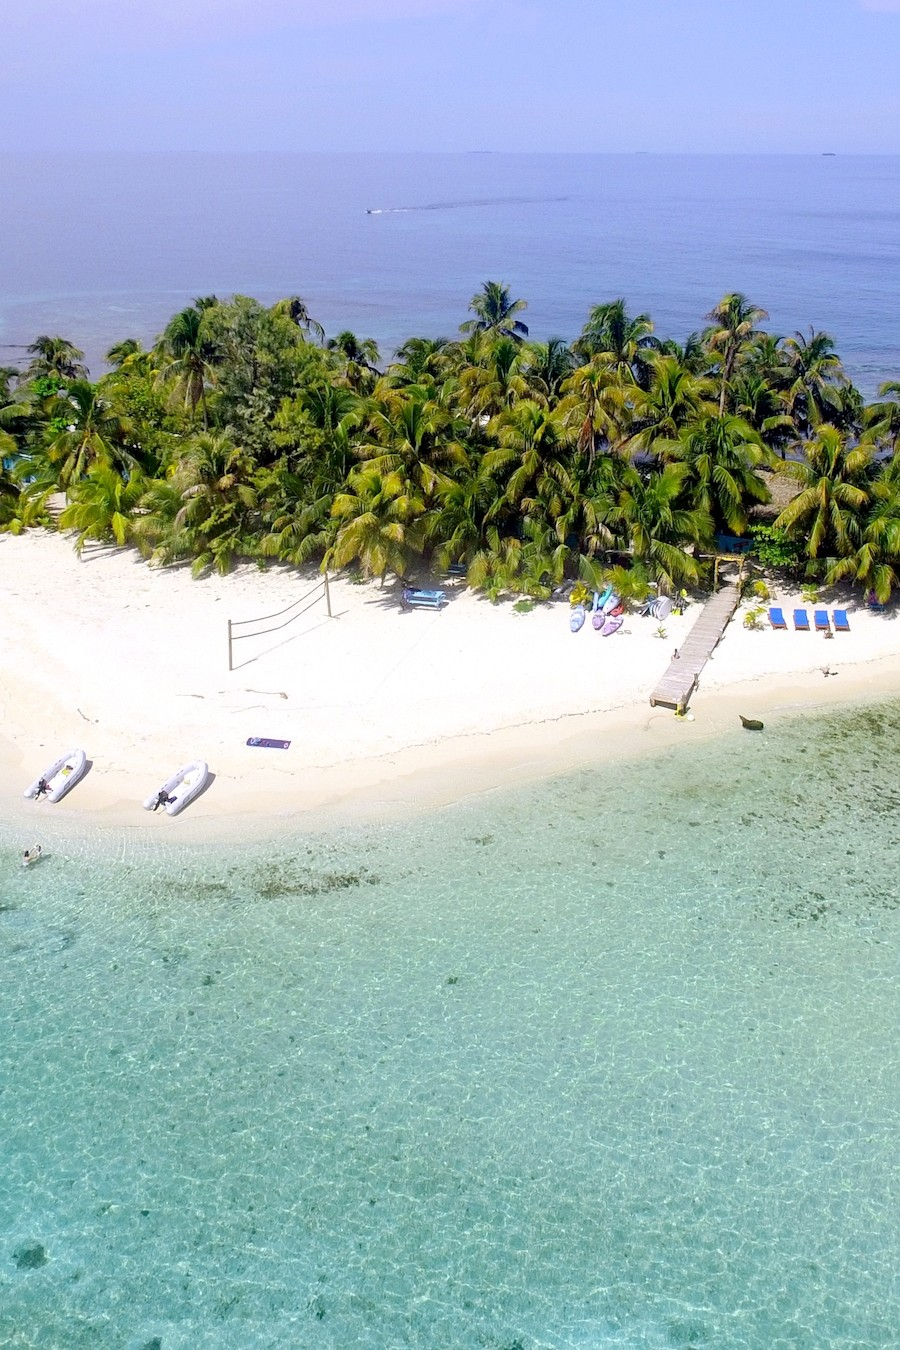 Our Private Island - Explore Belize Ocean Club's private island with our day trip, the Ranguana Tropical island Experience